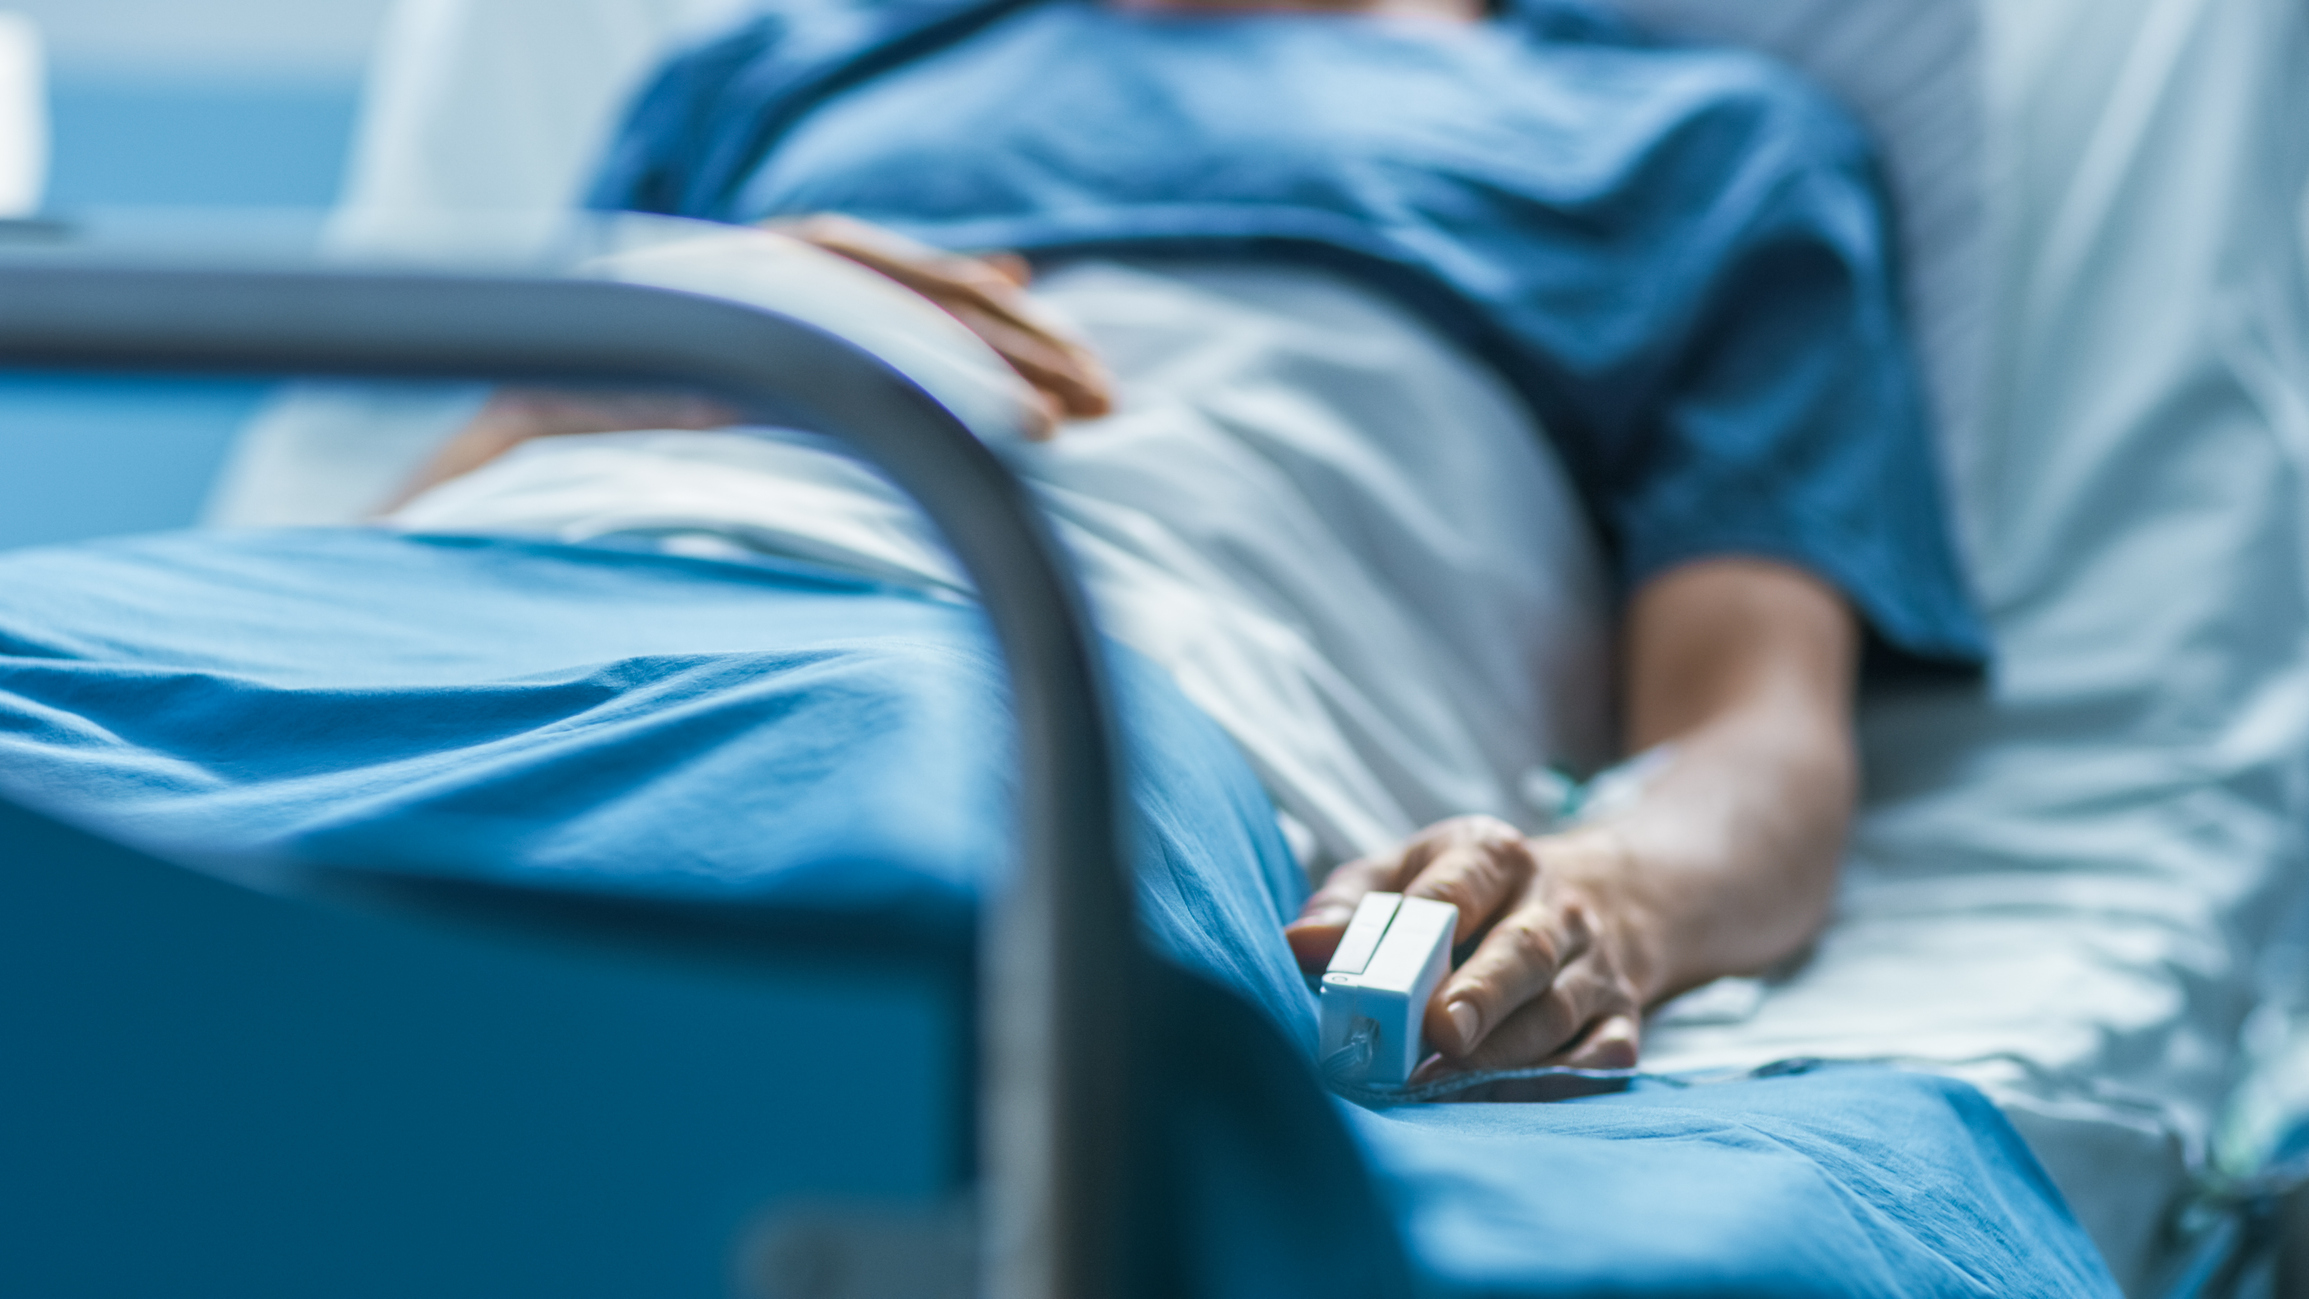 10 percent of coronavirus patients with diabetes die within a week of hospitalization, new study finds